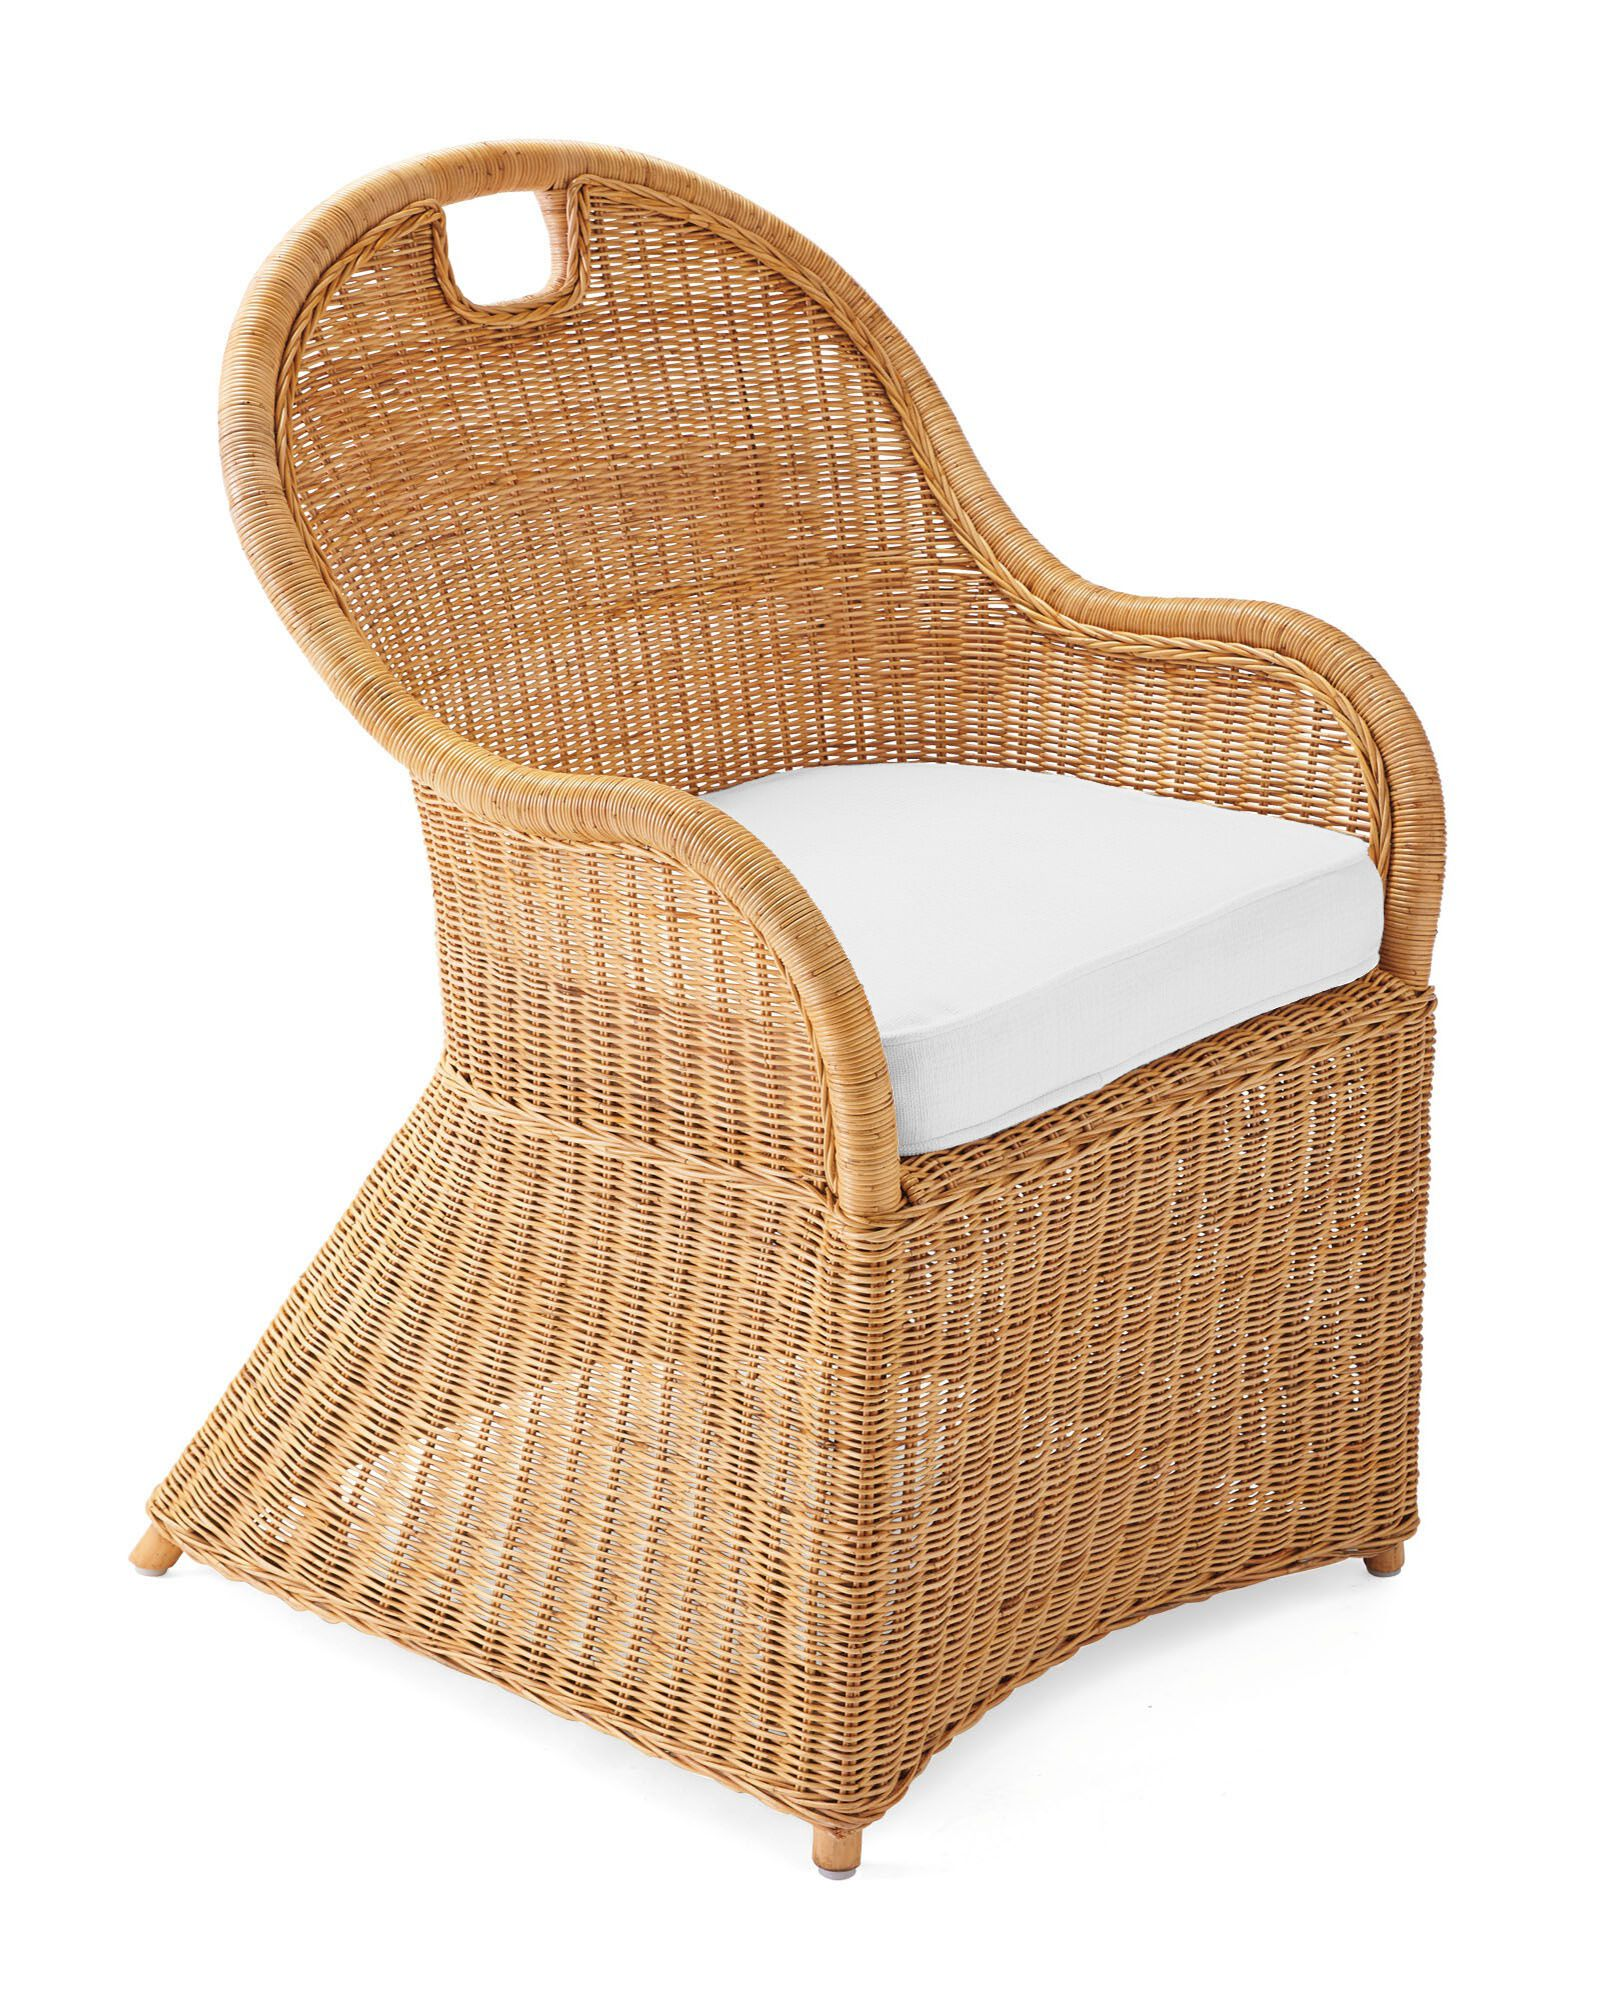 Cushion Cover for Shore Dining Chair & Counter Stool, Perennials Basketweave White